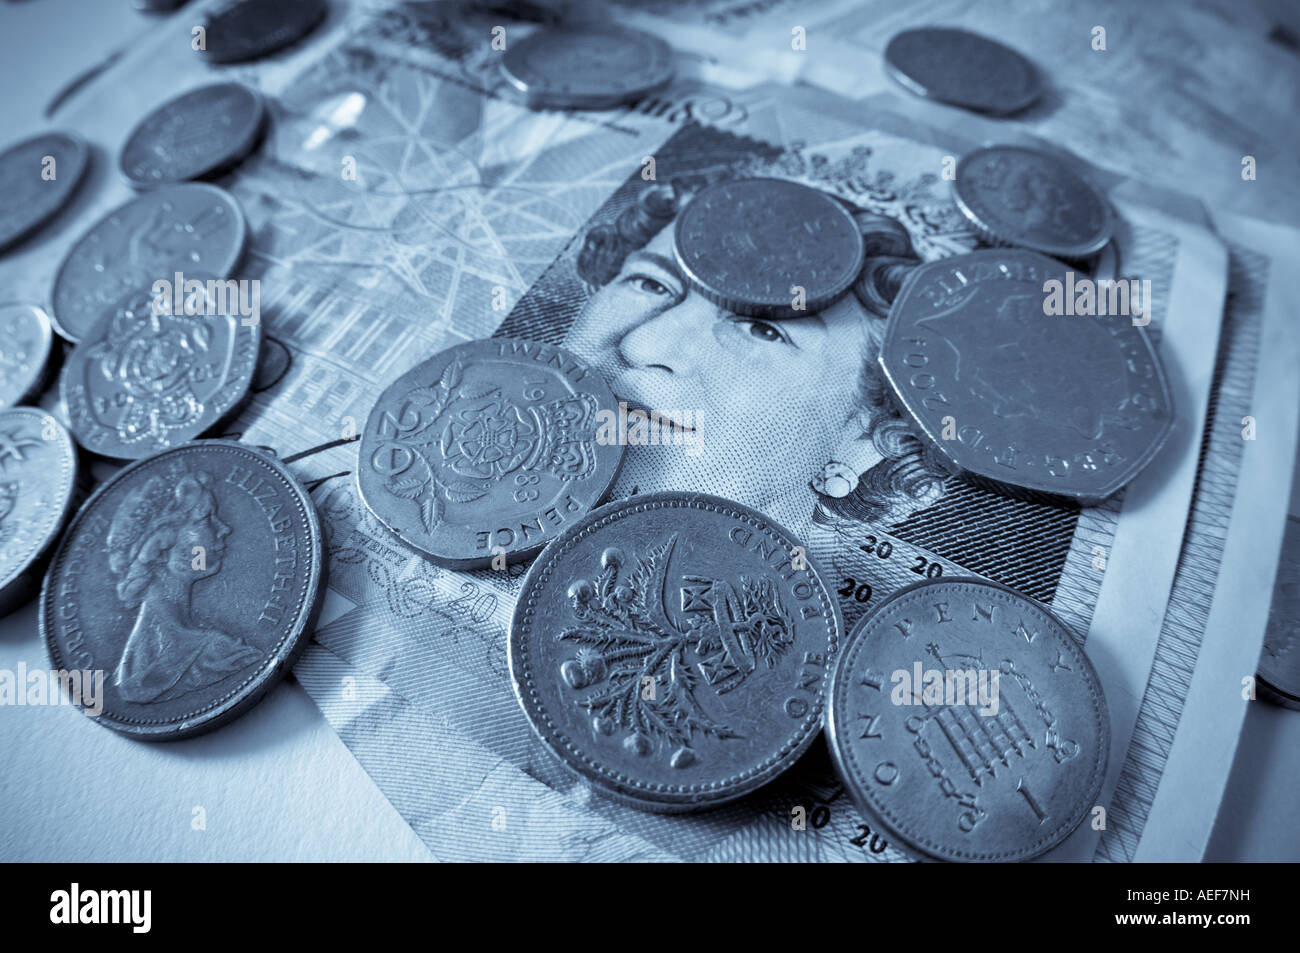 cold cash - Stock Image